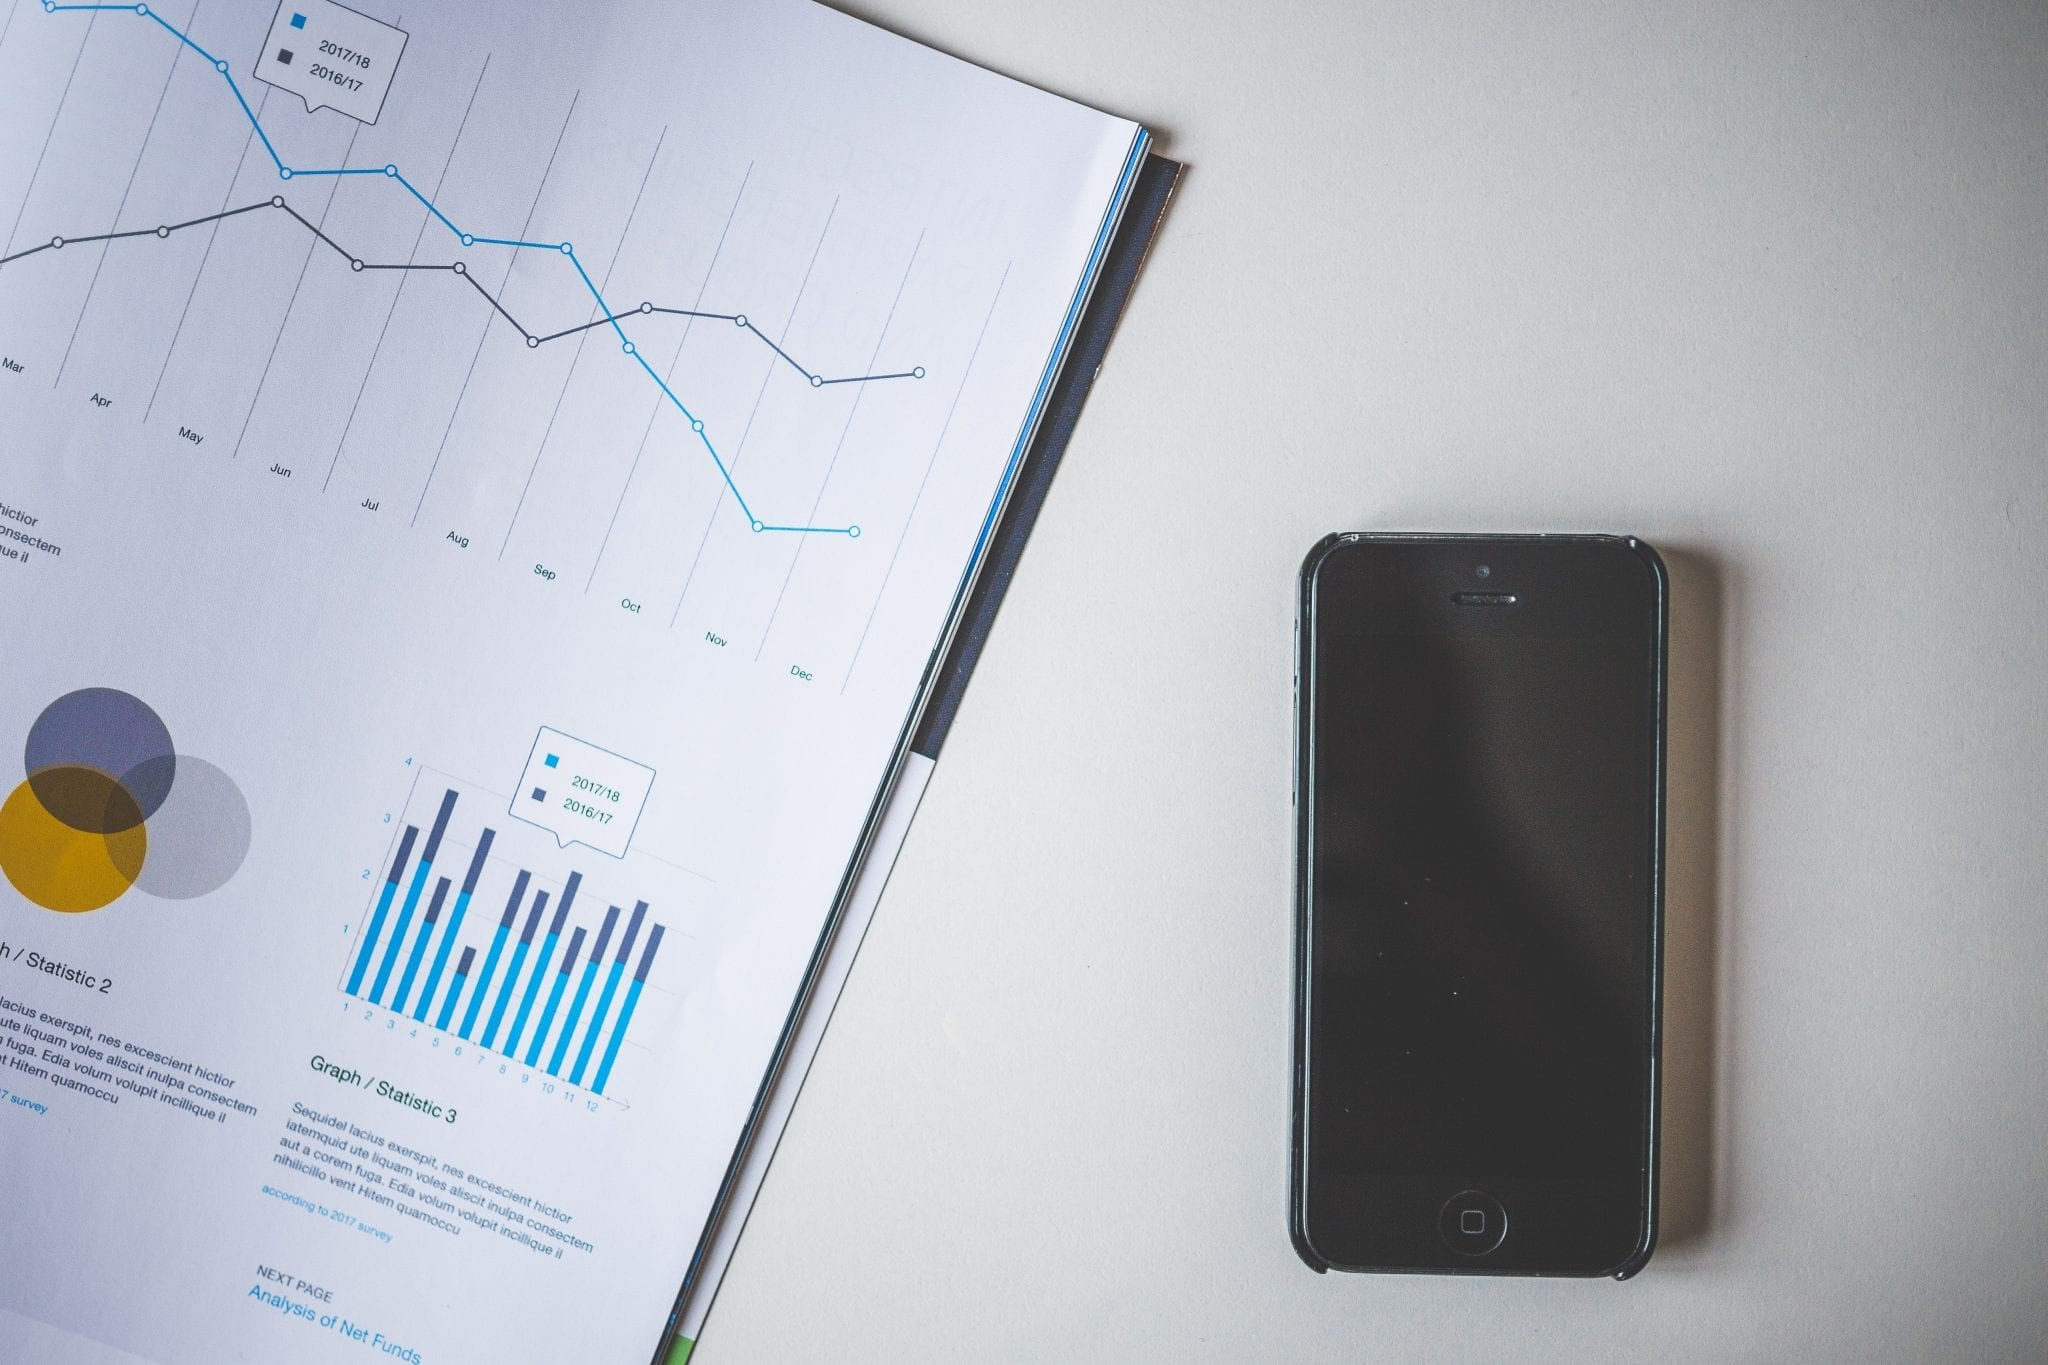 Analytics chart next to a black iPhone screen